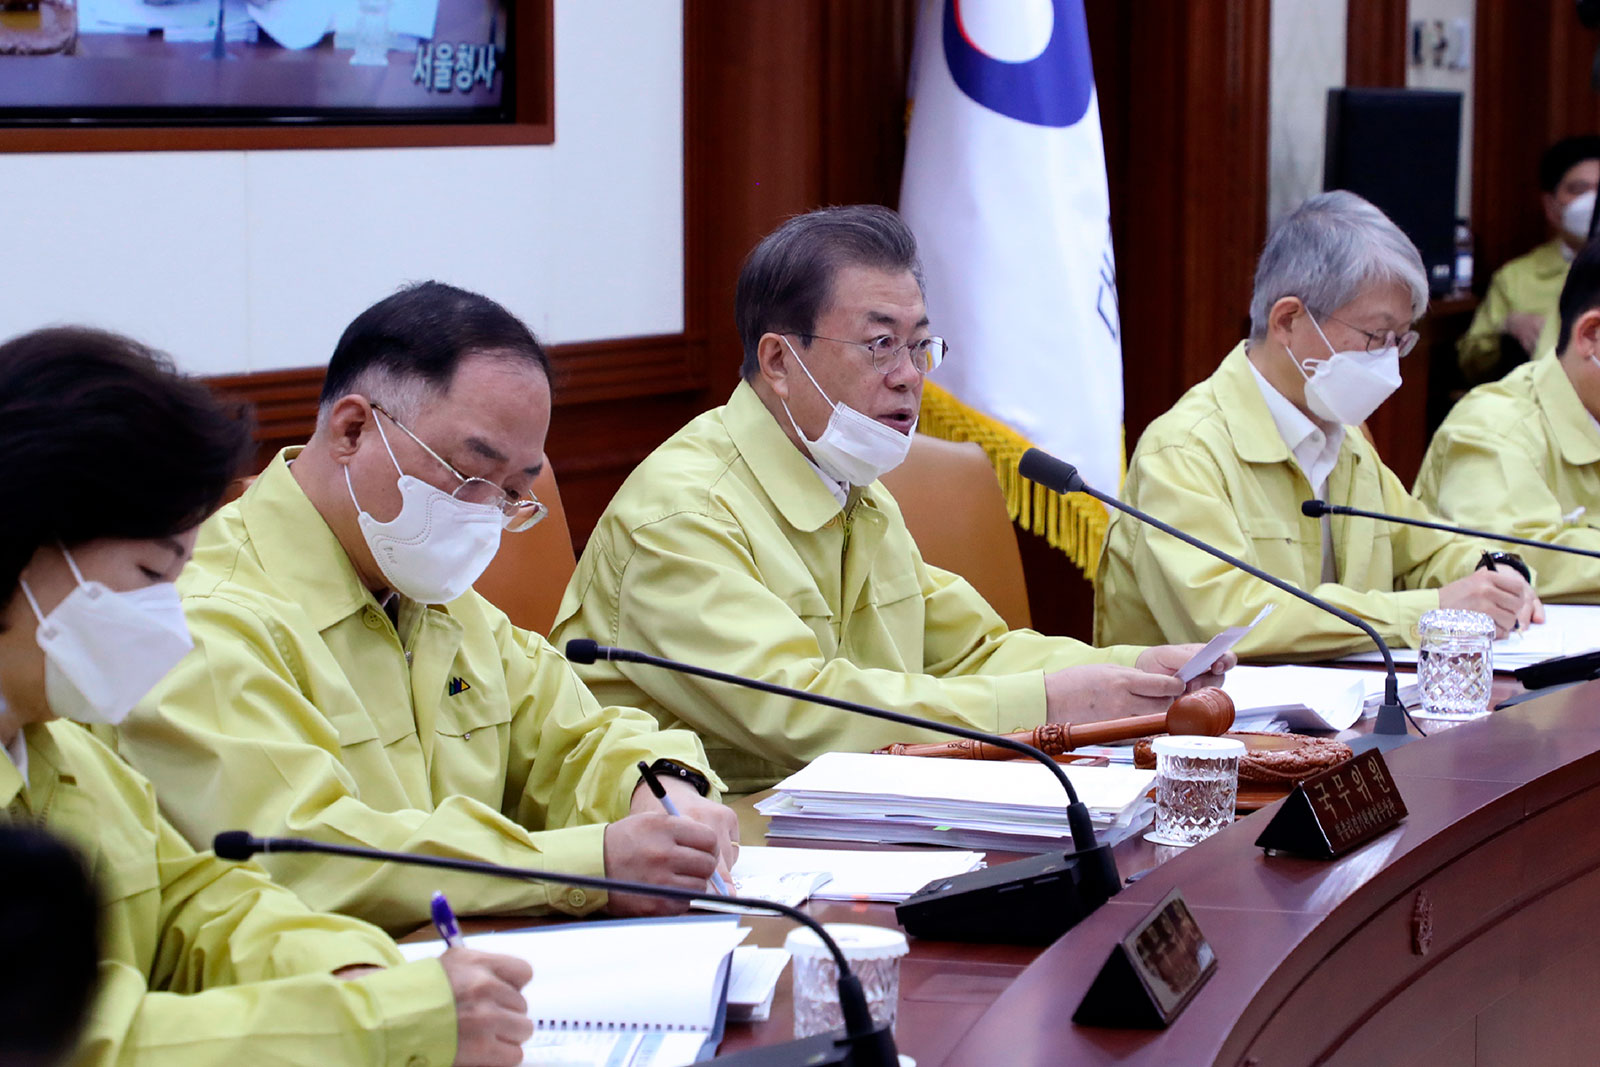 South Korean President Moon Jae-in, center, speaks during a cabinet meeting at a government complex in Seoul on March 3.